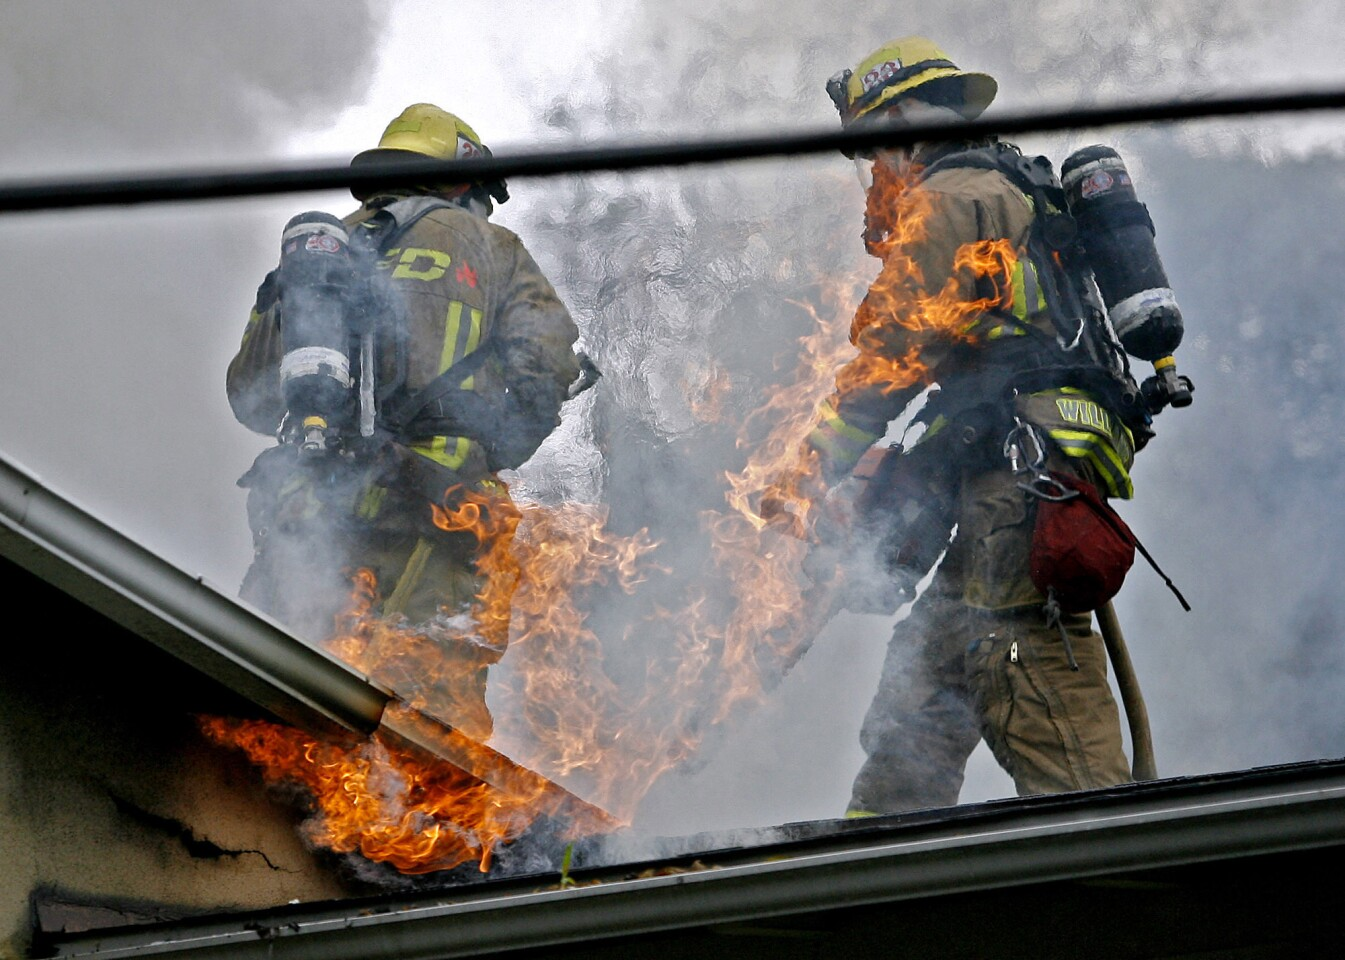 Photo Gallery: House fire in Glendale - Los Angeles Times